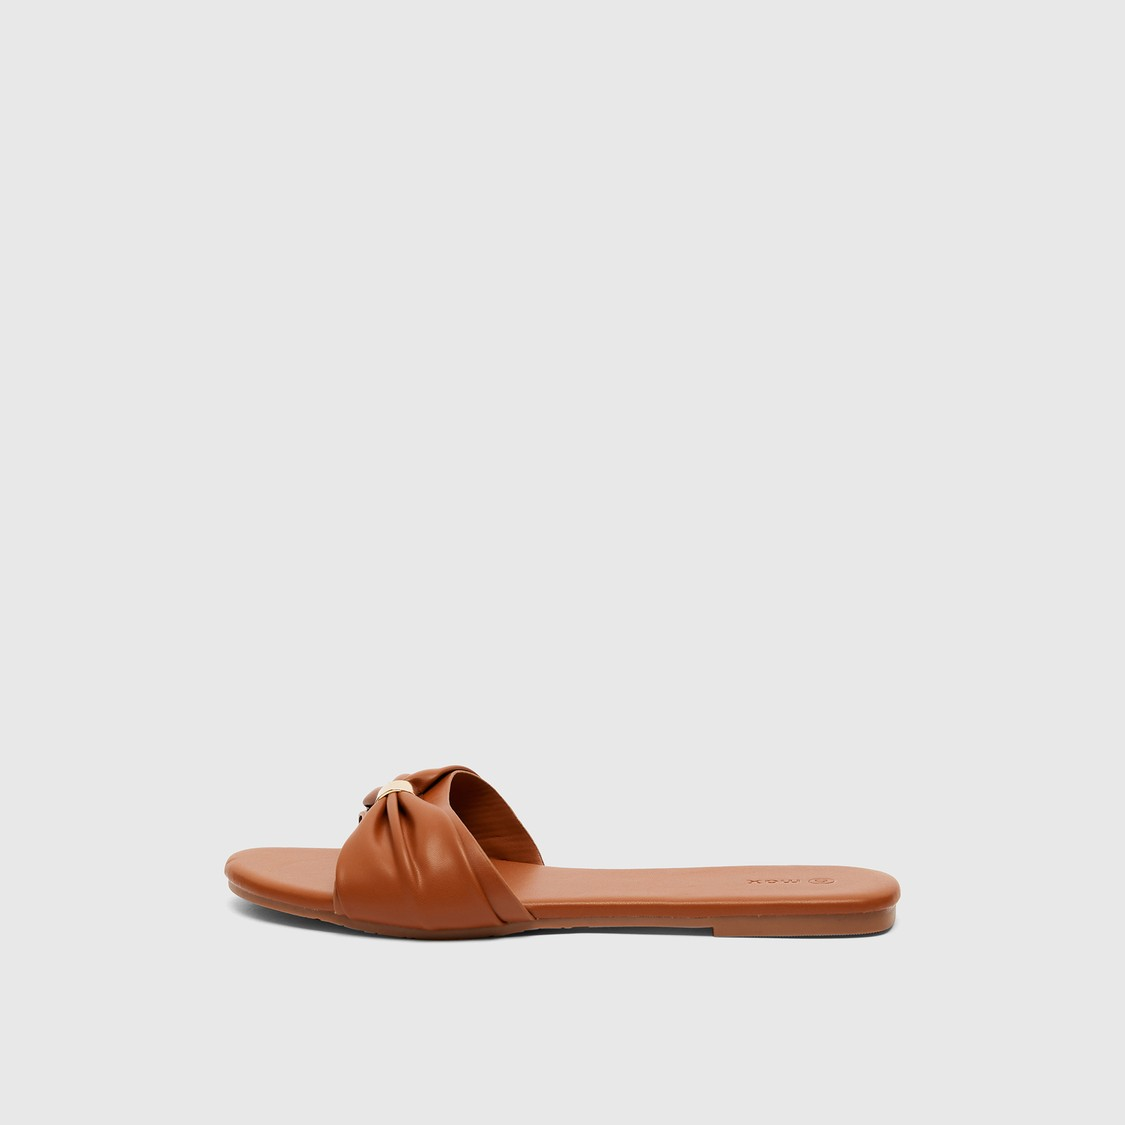 Slip-On Flat Sandals with Bow Accent